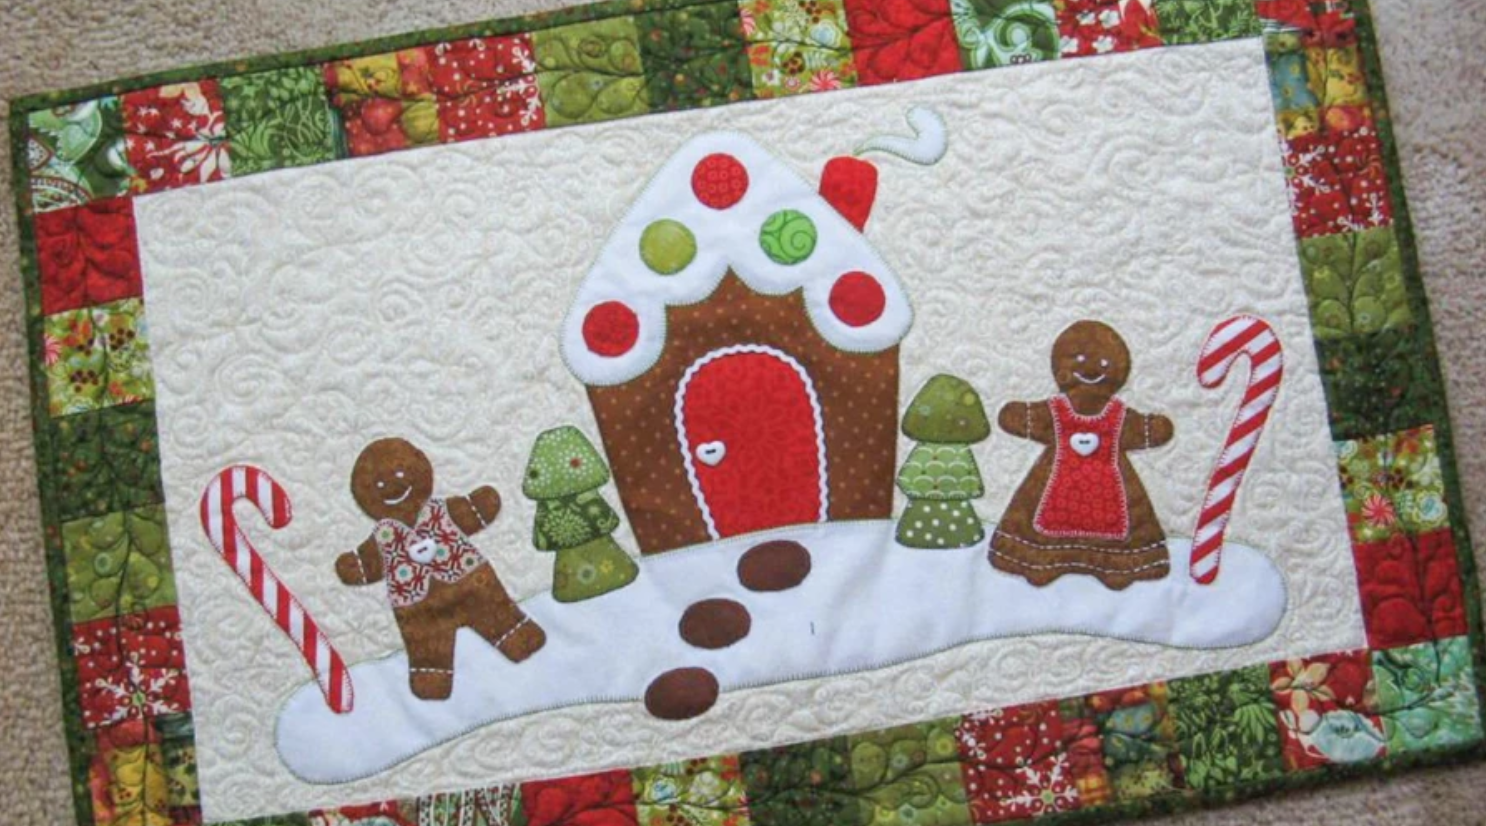 gingerbread man and house table runner